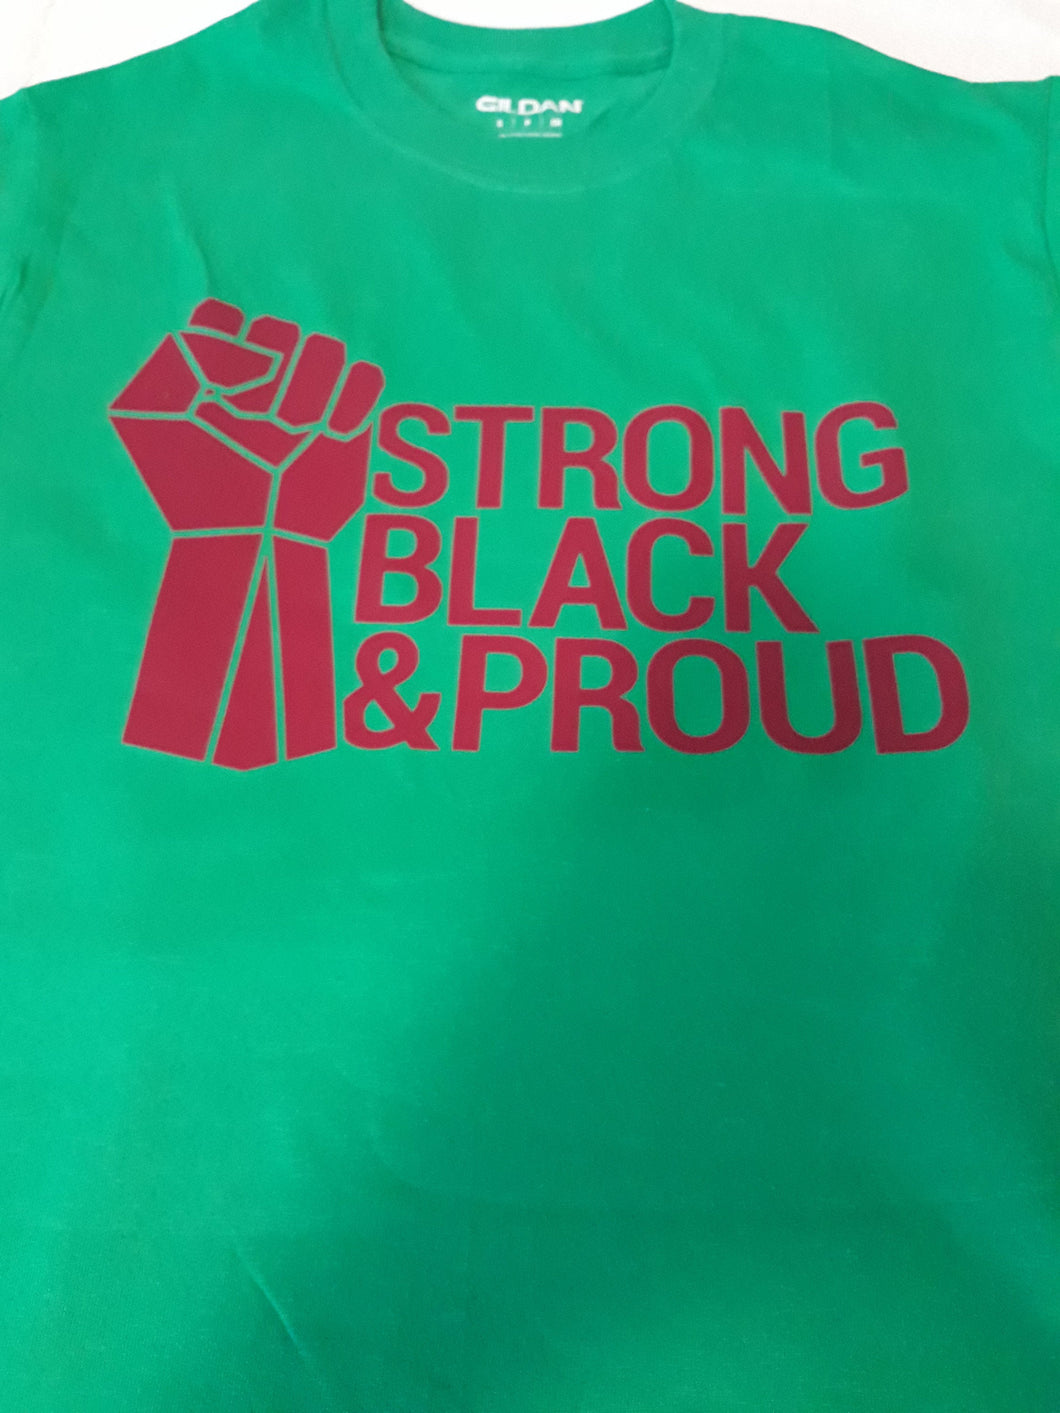 STRONG BLACK PROUD